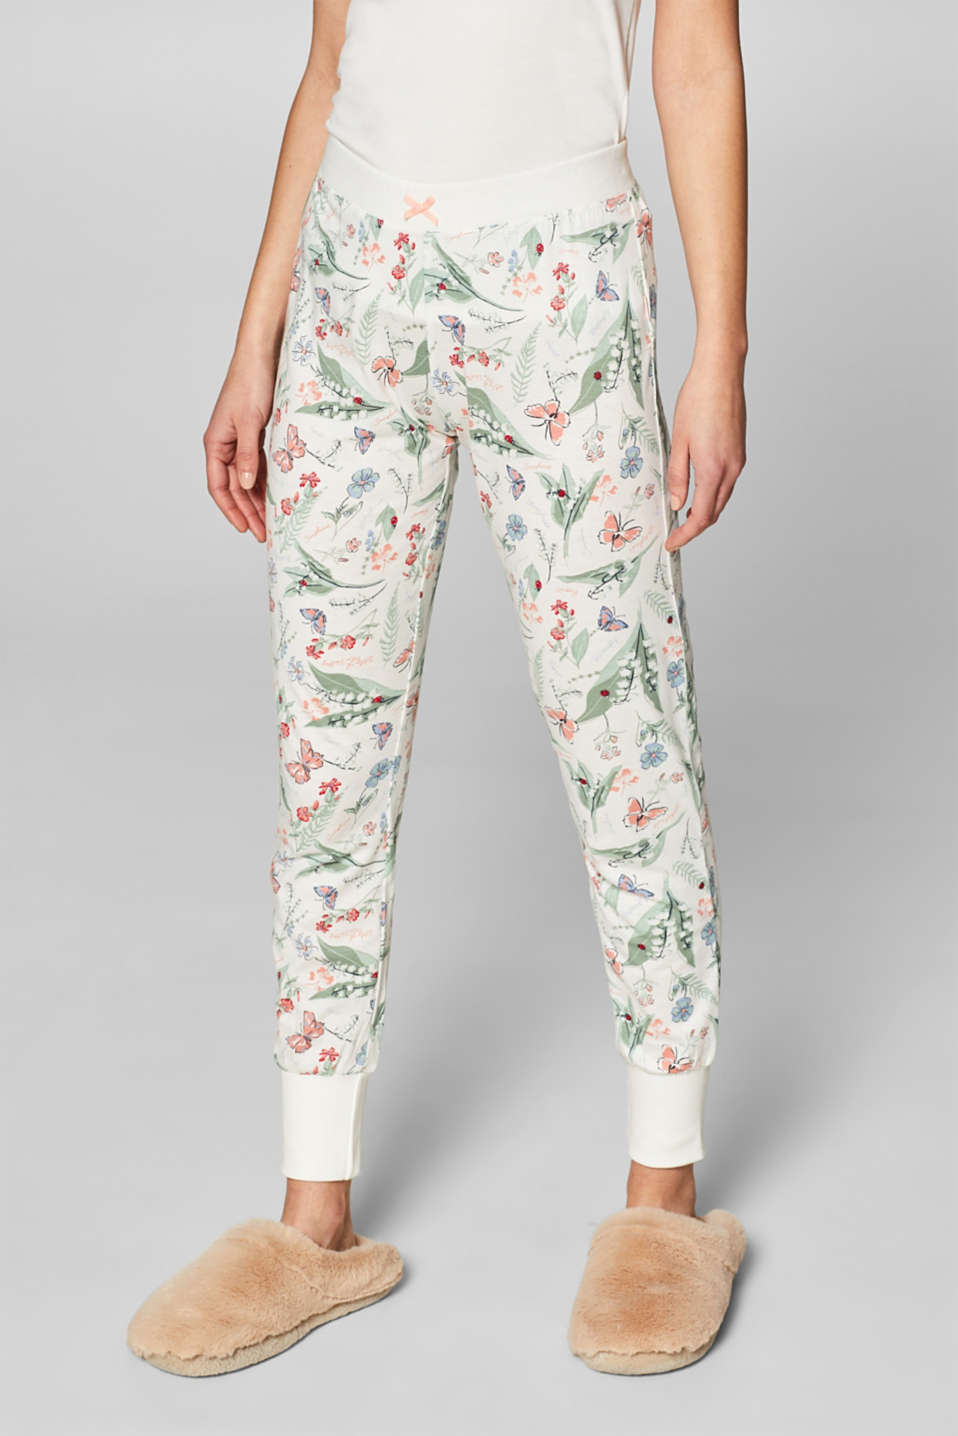 Esprit - Jersey bottoms with a floral print, 100% cotton